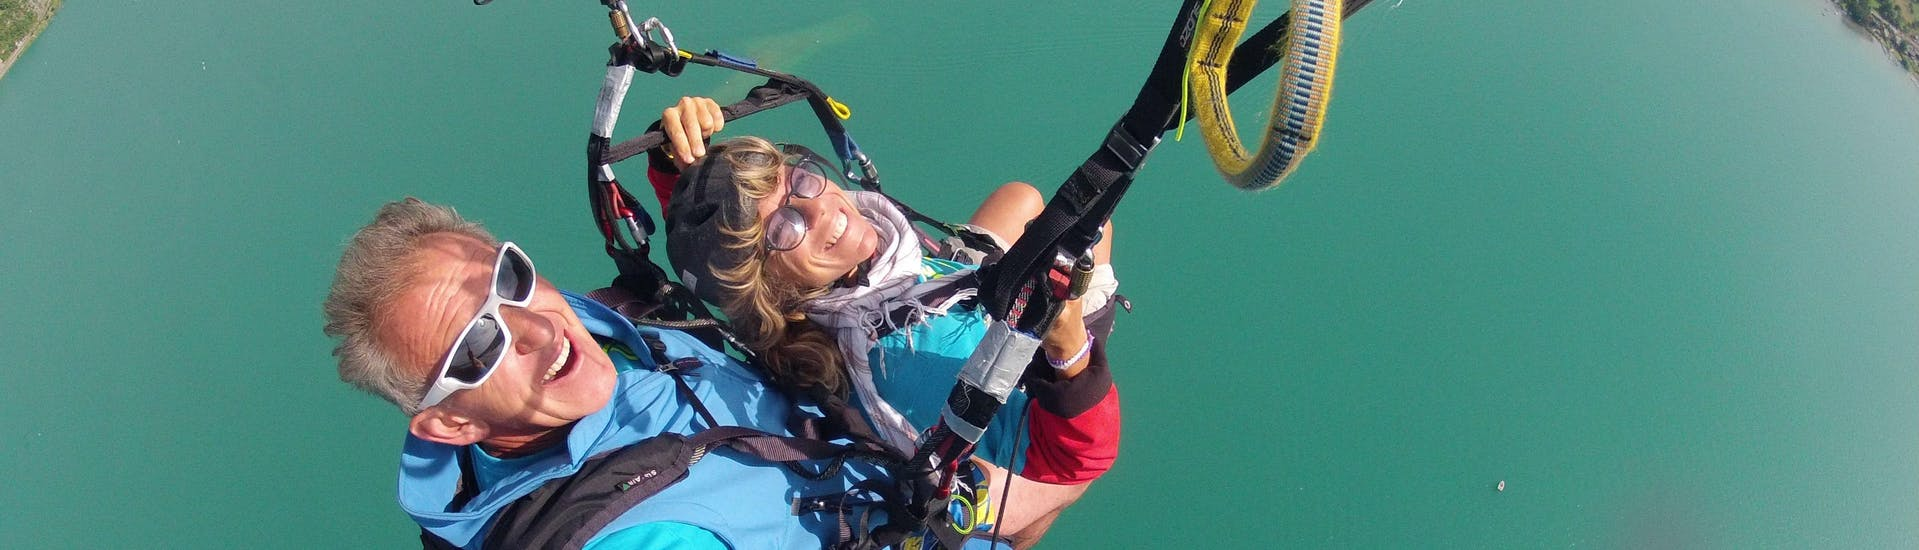 A person is participating to Tandem Paragliding at Lake Annecy - Prestige activity with FBI Parapente.